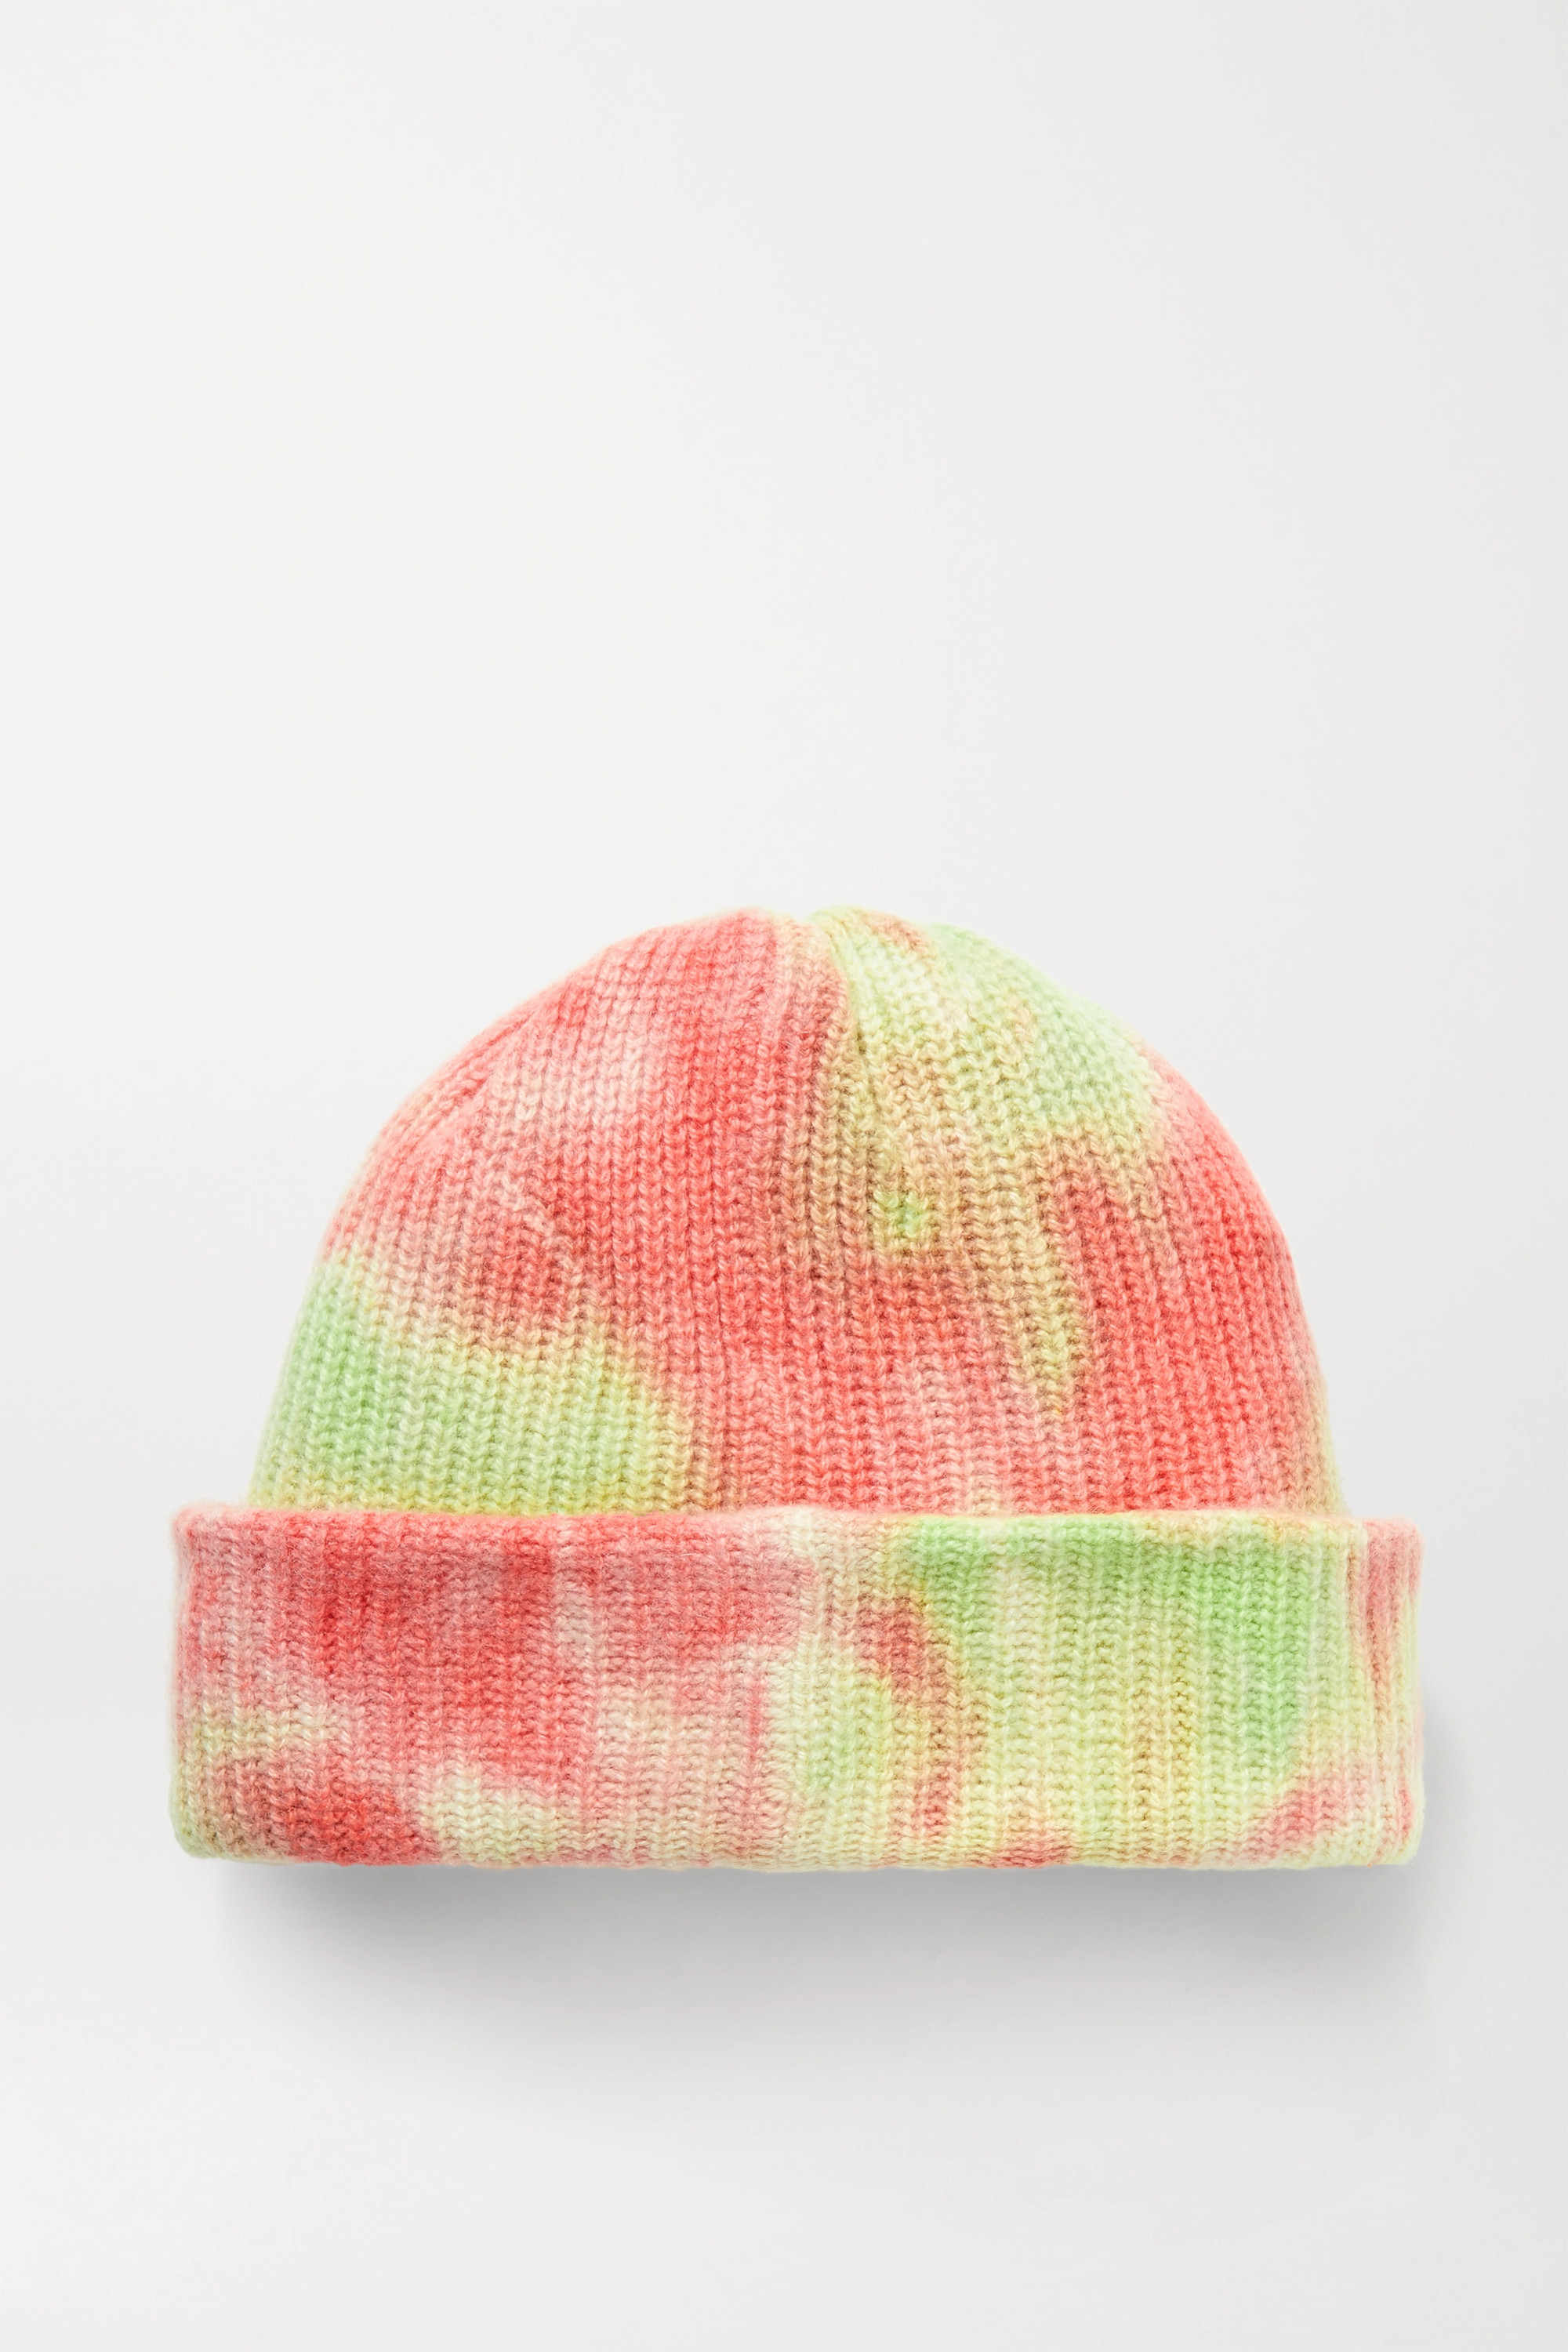 The Elder Statesman Watchman tie-dyed ribbed cashmere beanie